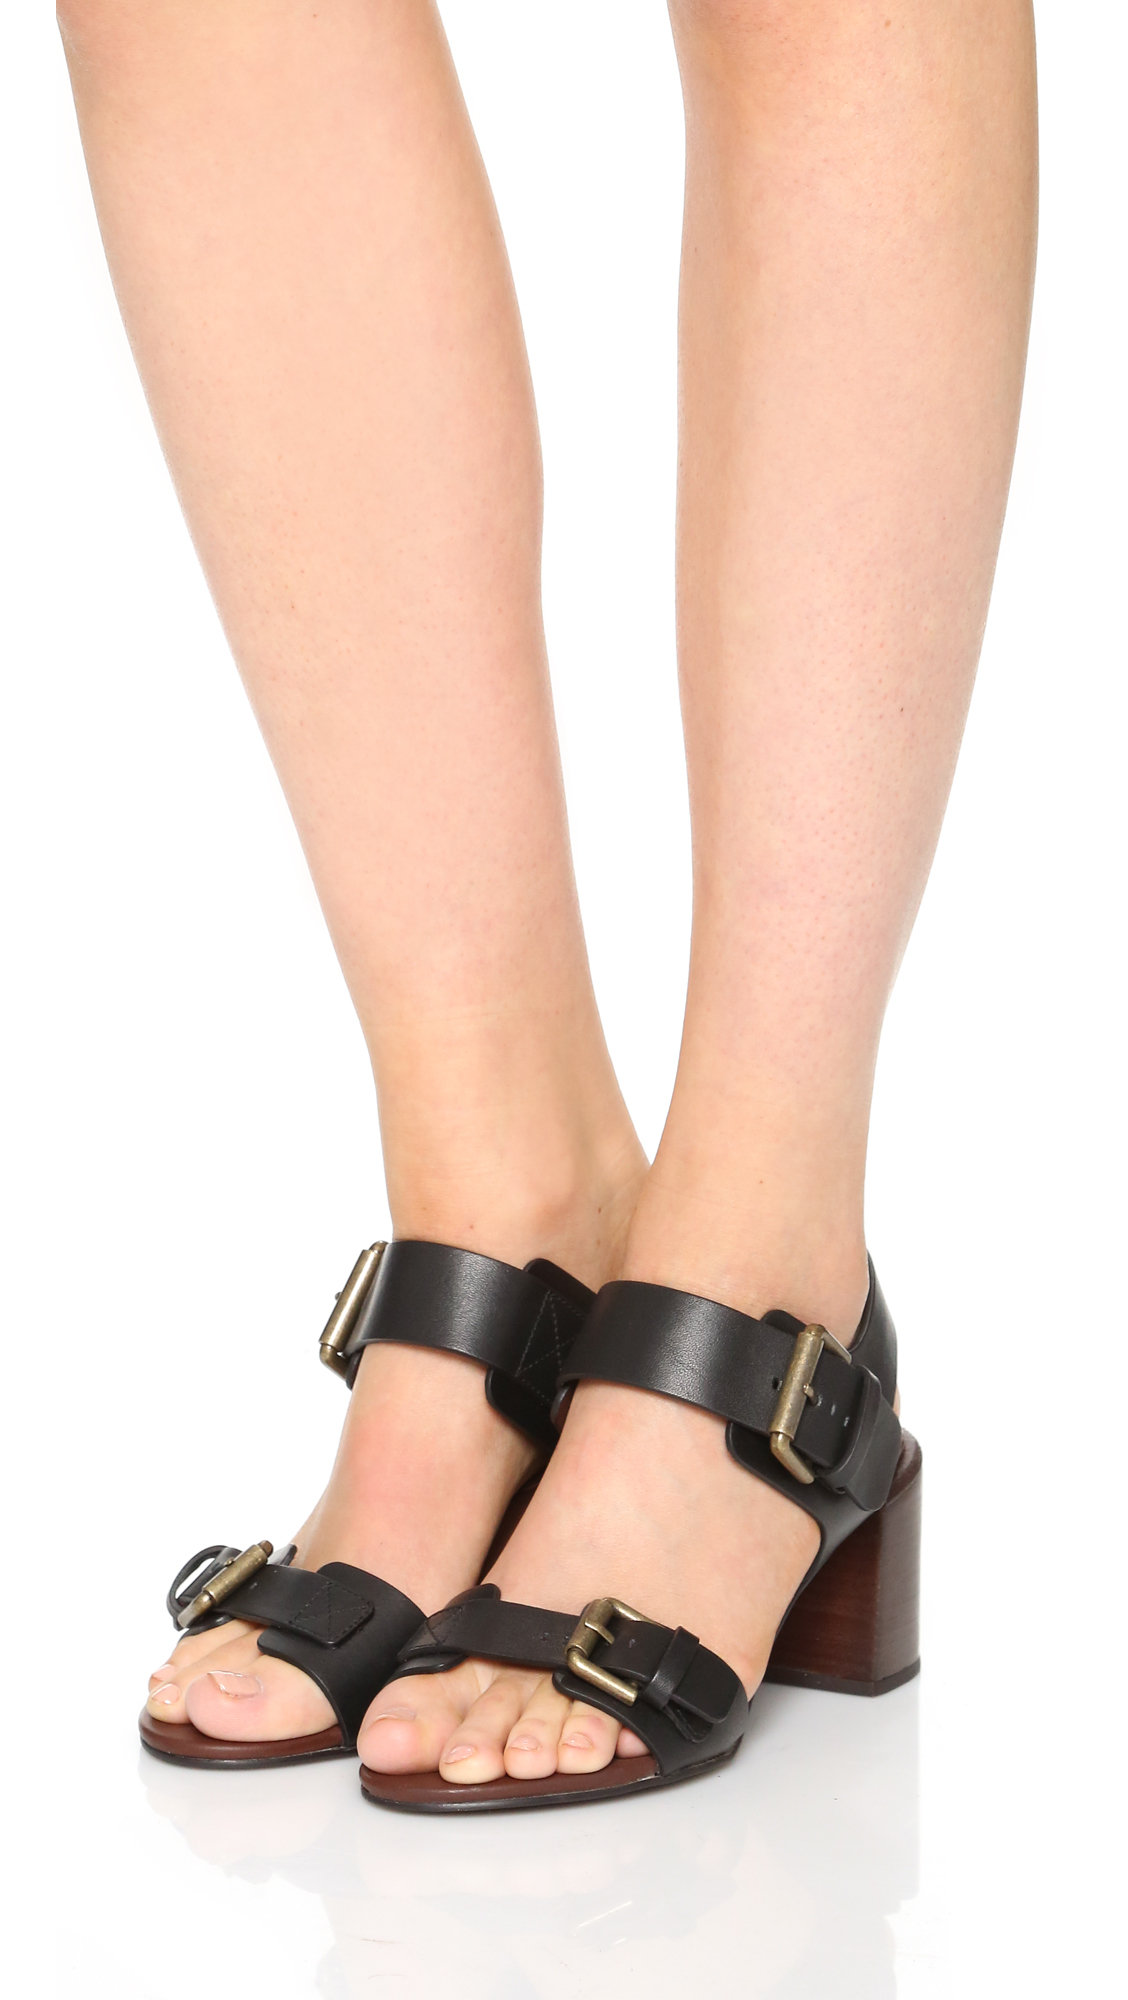 c9e60f4e79e5 Lyst - See By Chloé Romy City Sandals in Natural